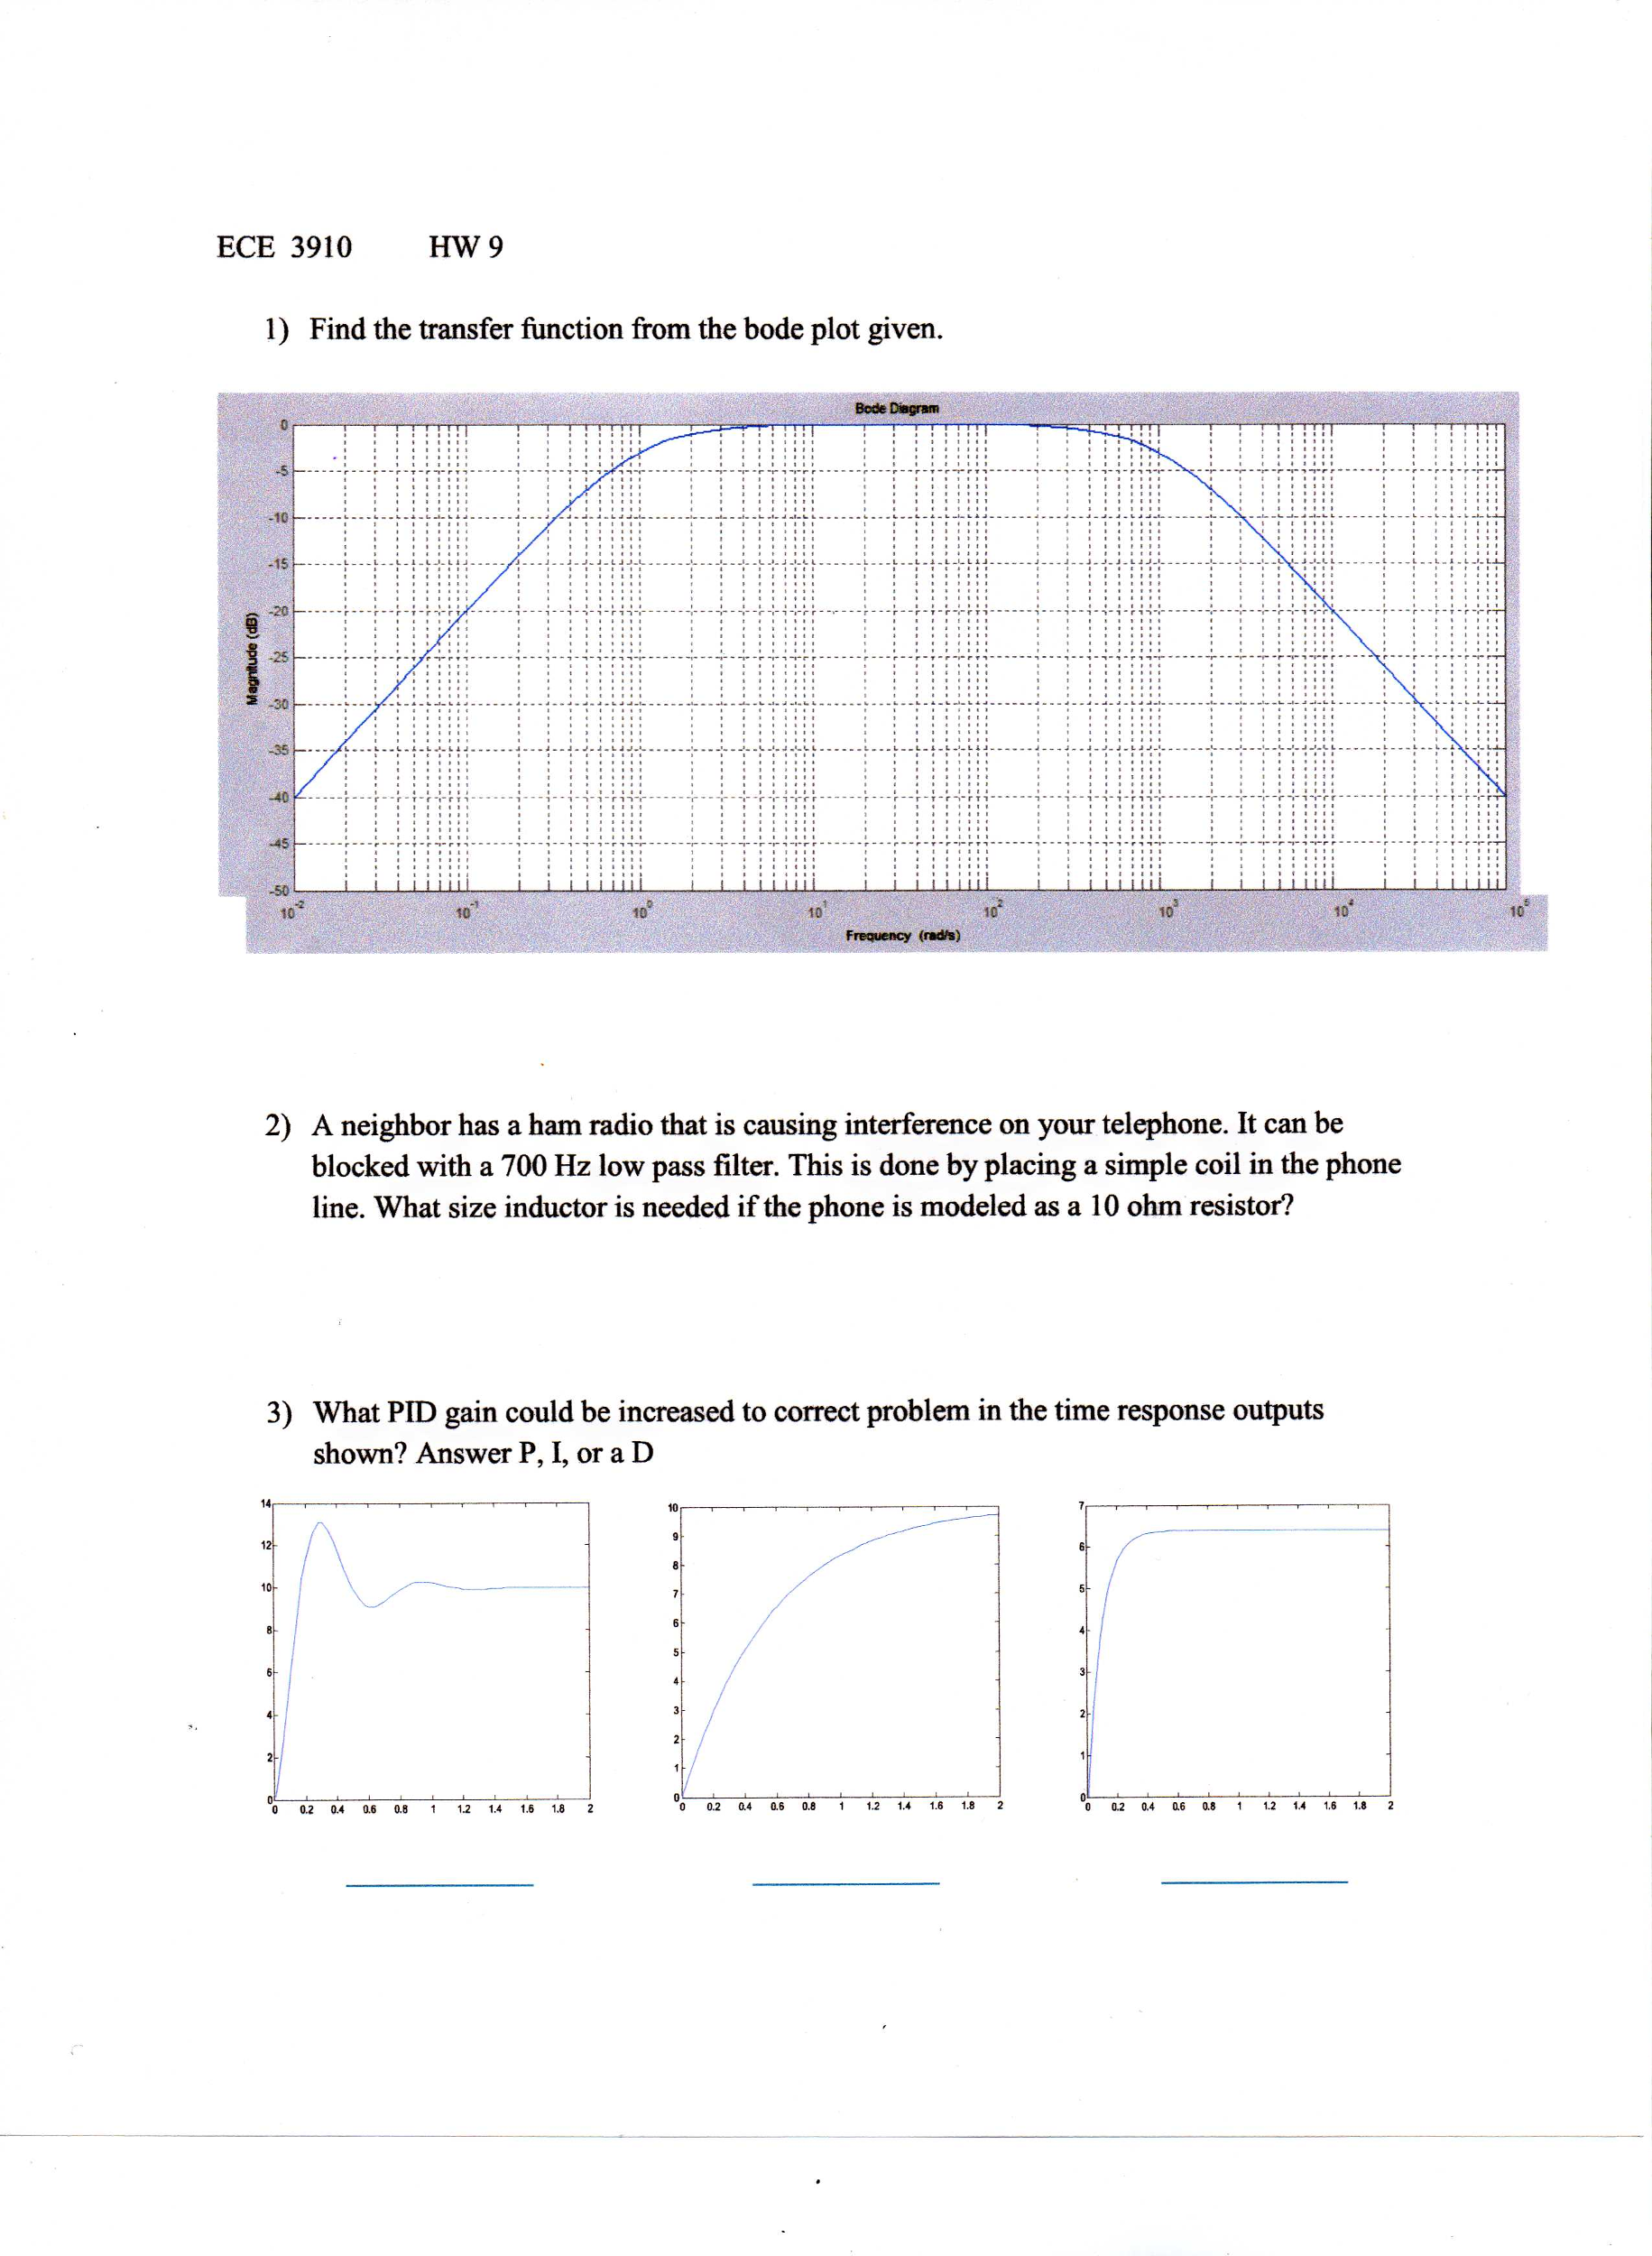 Find the transfer function from the bode plot give